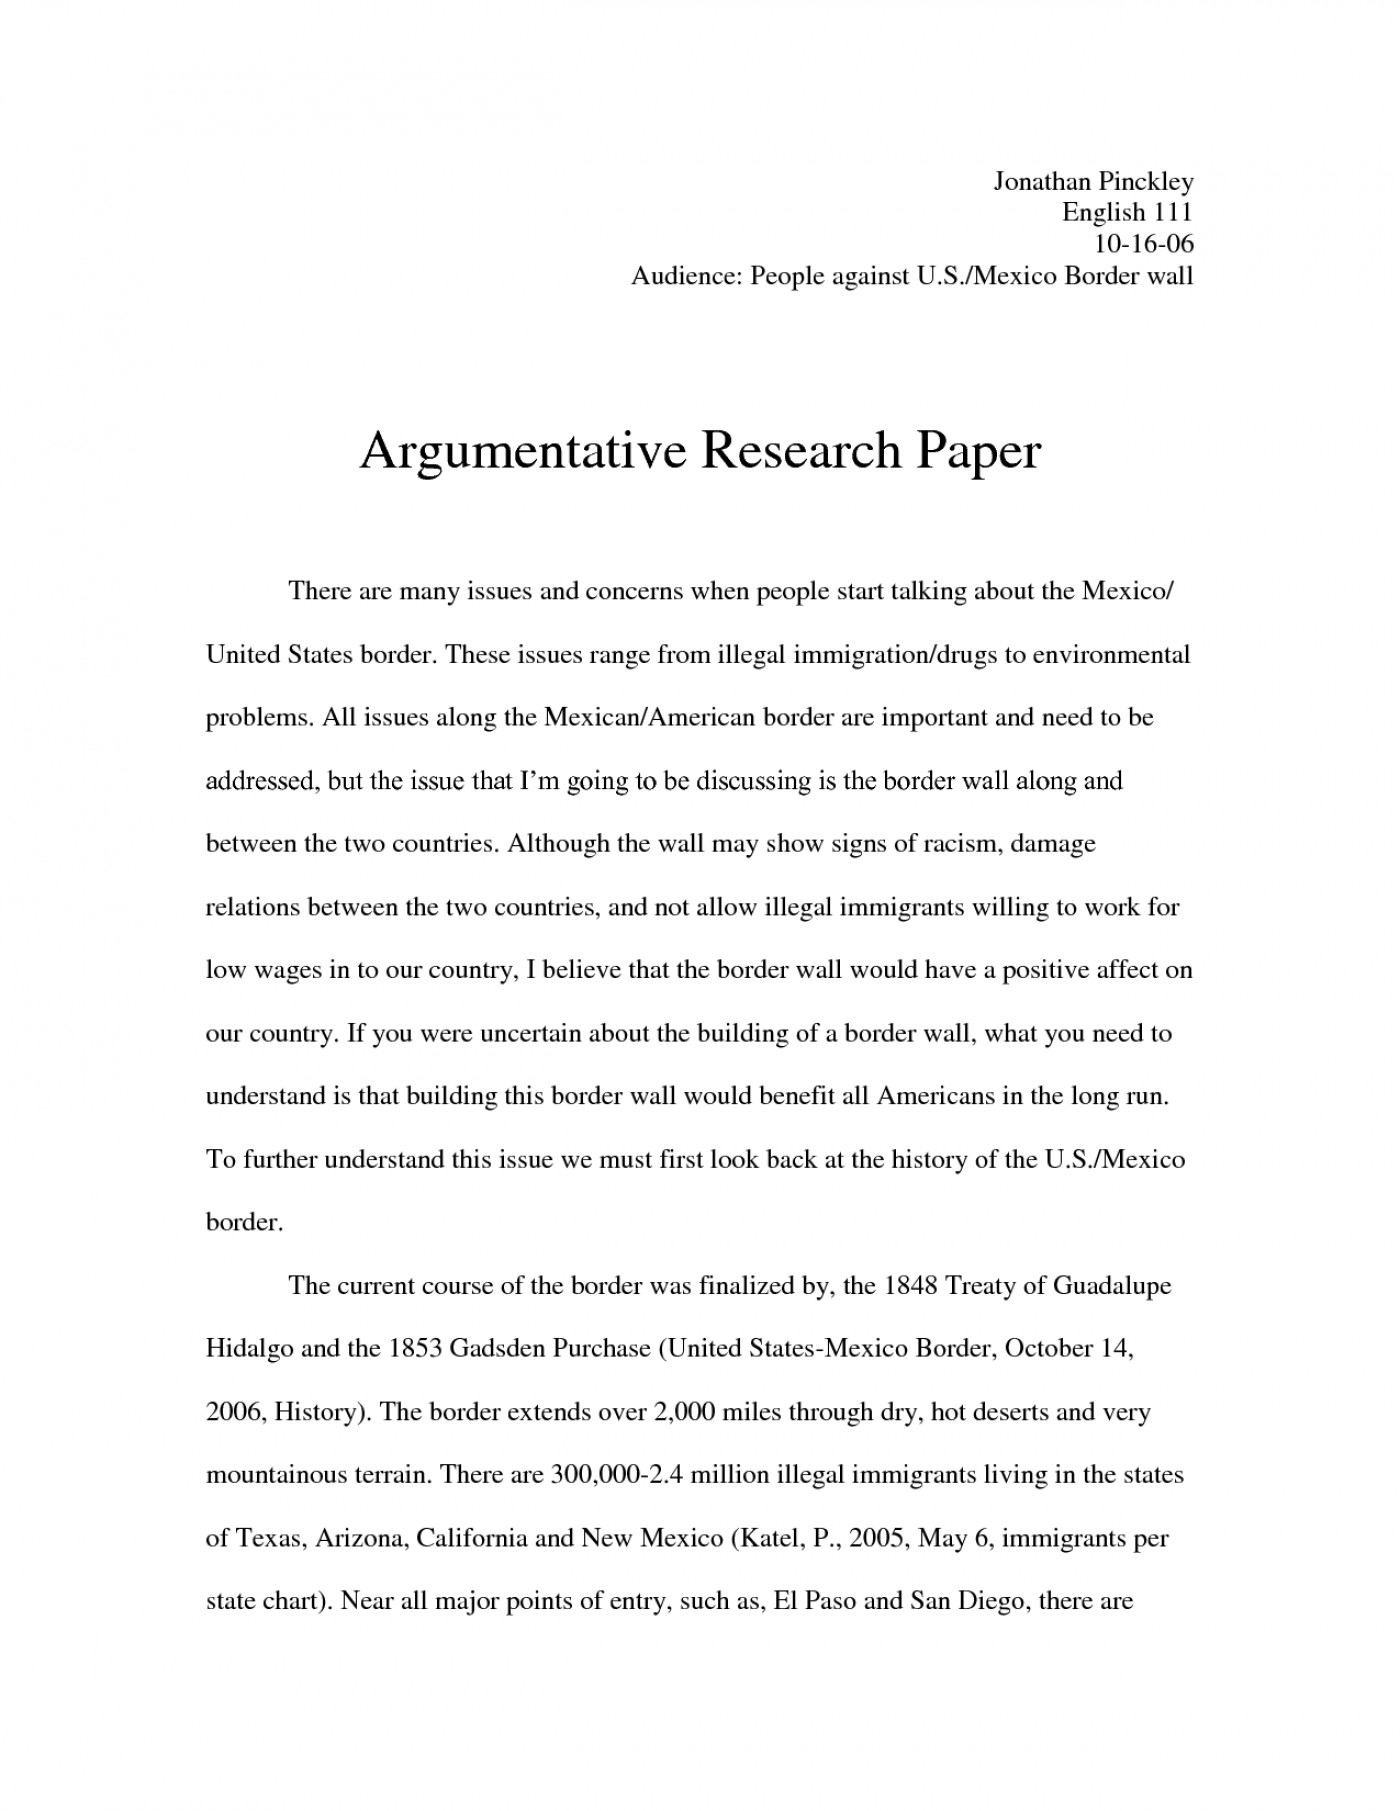 014 Uncategorized Debate20y Argumentative Thesis High School Topics Sentence Starters Outline Worksheet Structure20 For Research Rare A Paper Medical Interesting 1400